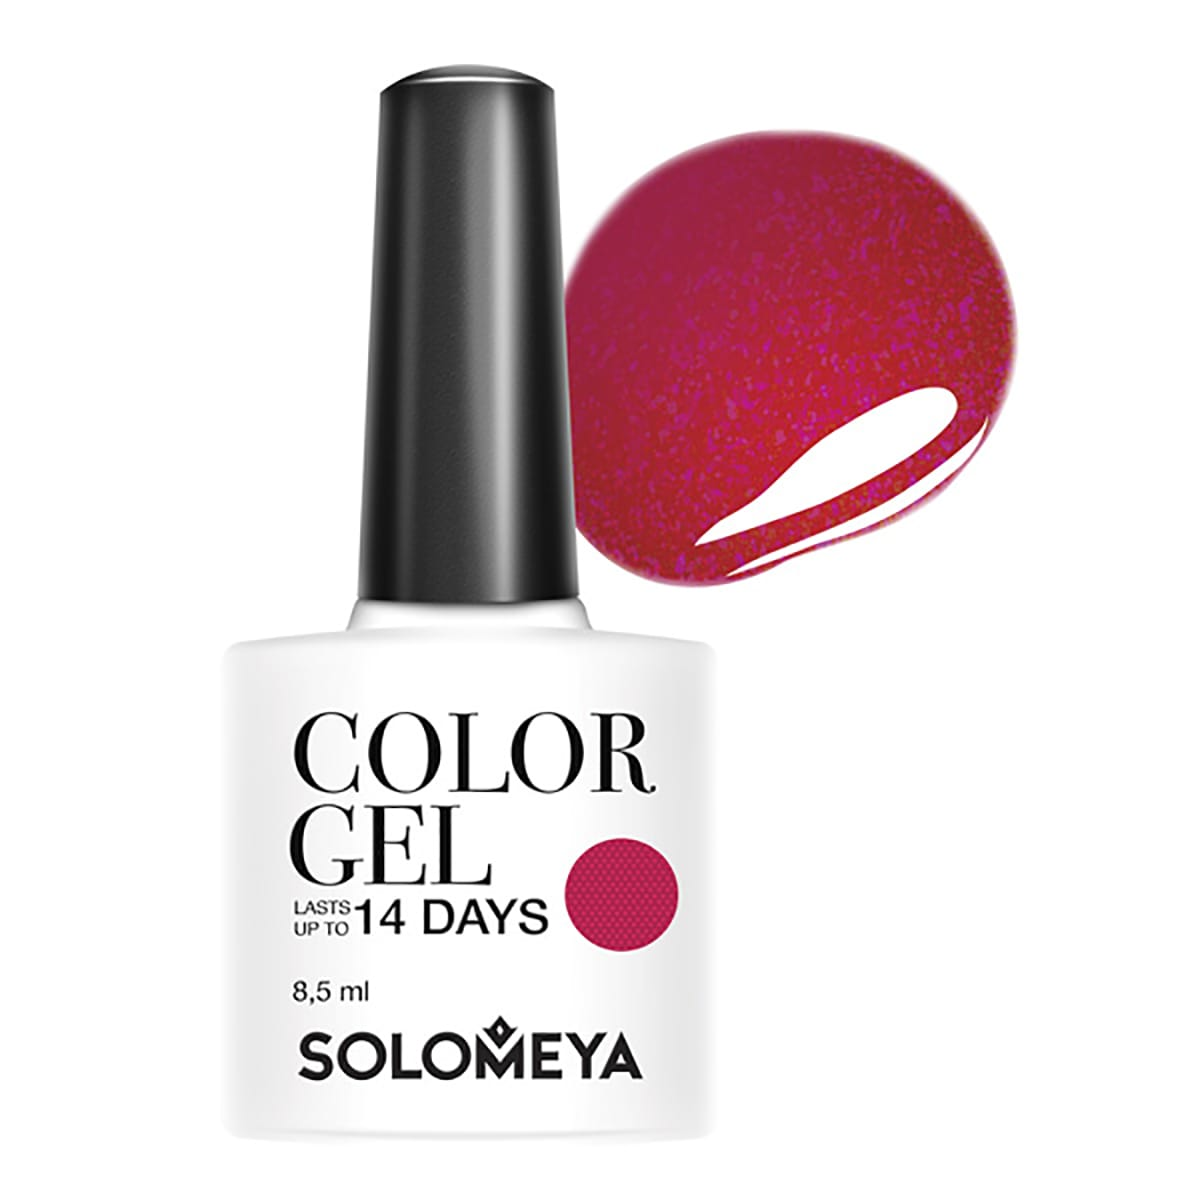 SOLOMEYA Гель-лак для ногтей SCG086 Коктейль / Color Gel Coctail 8,5 мл - Гель-лаки